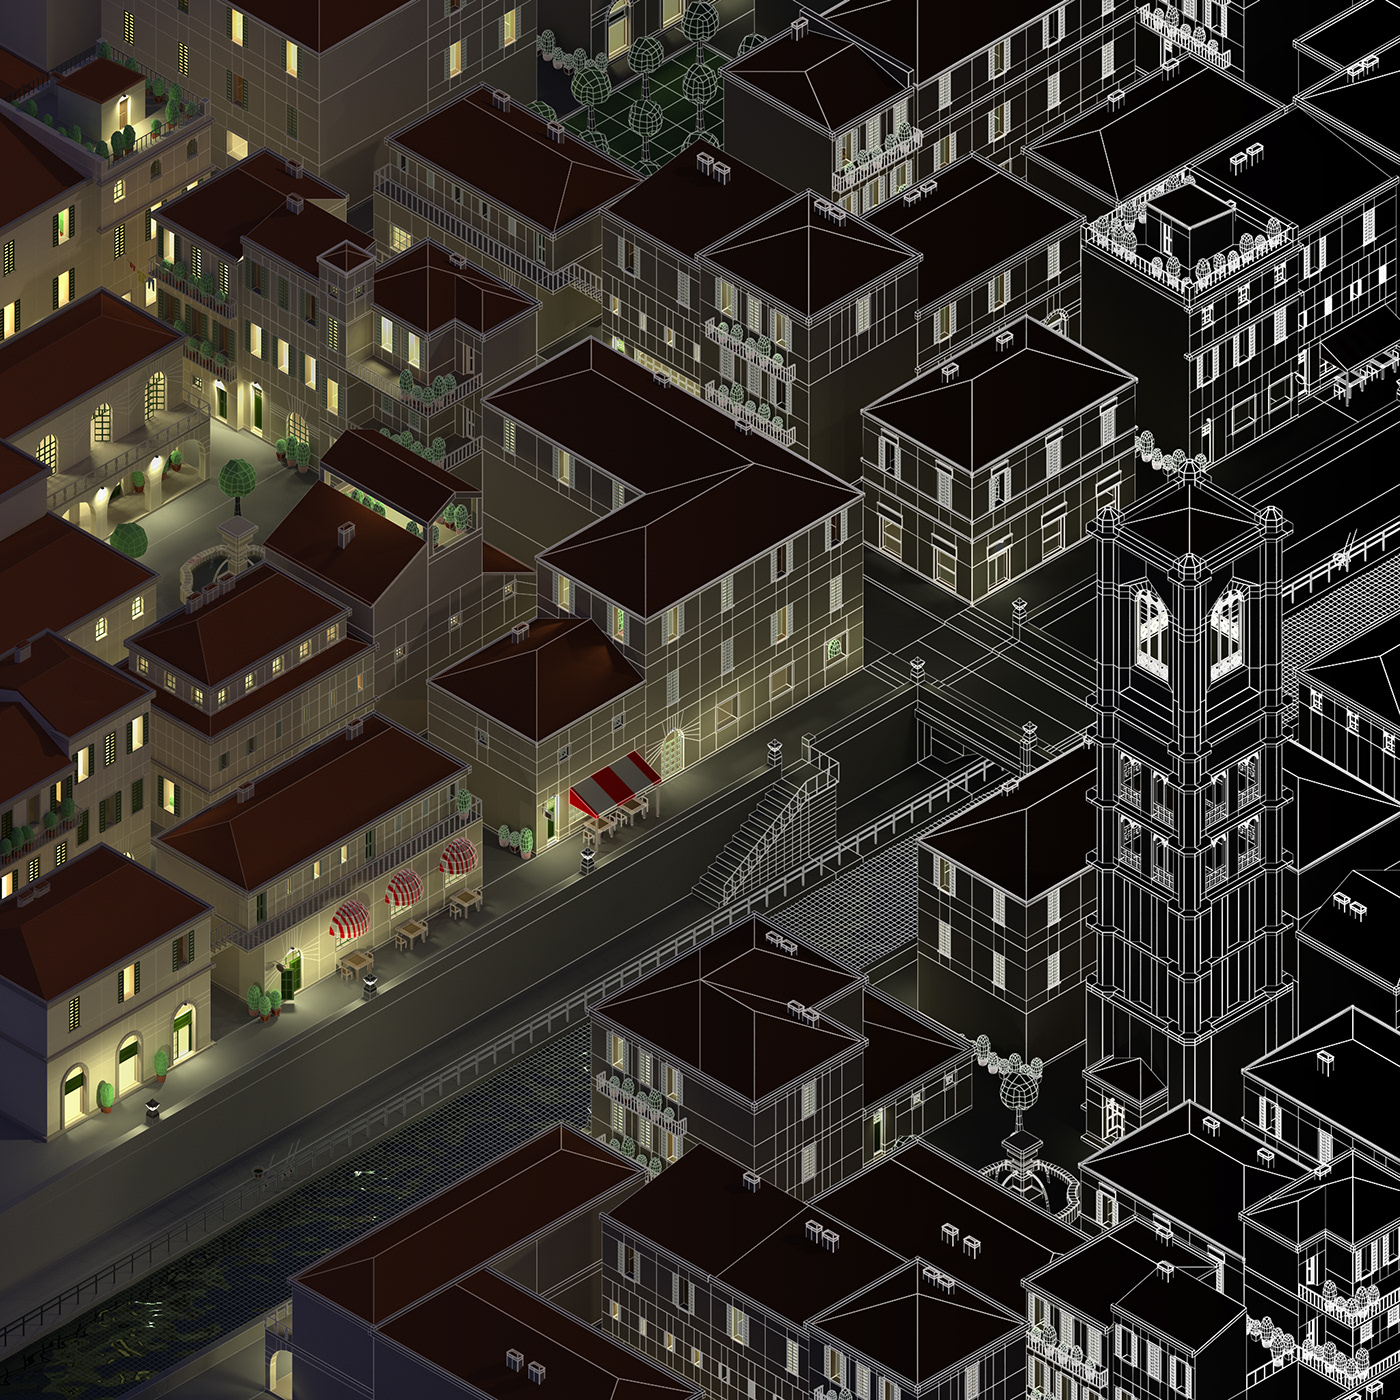 architecture axonometry city digital3d ILLUSTRATION  lowpoly night orthography town